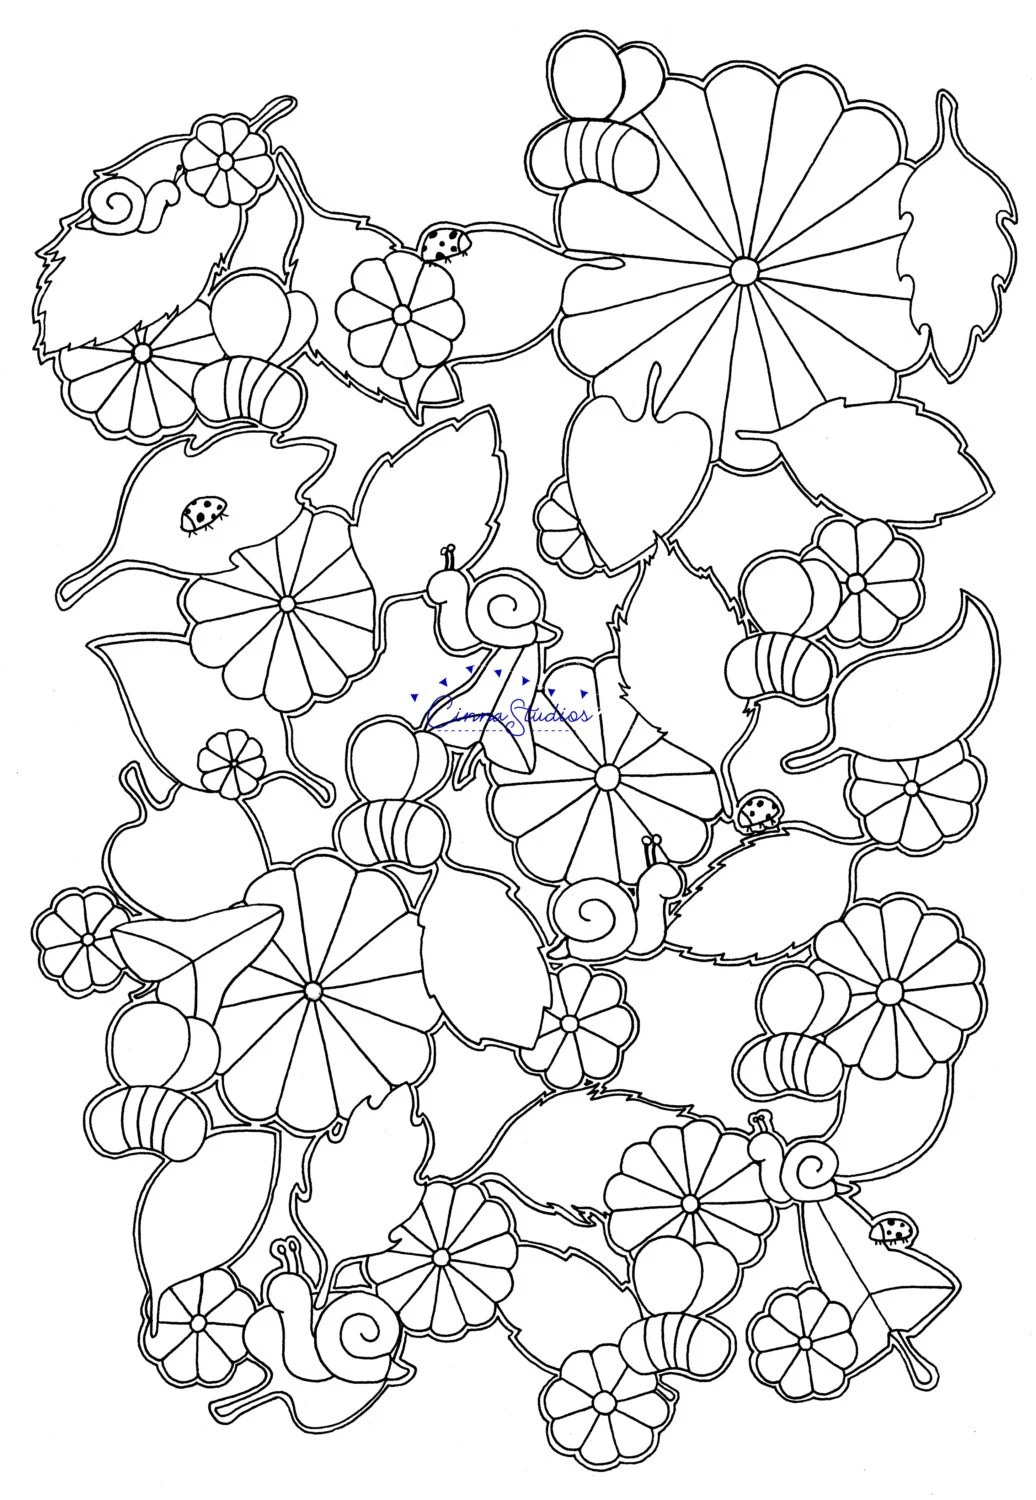 Bees Ii Coloring Page Adult Coloring Download Printable Page